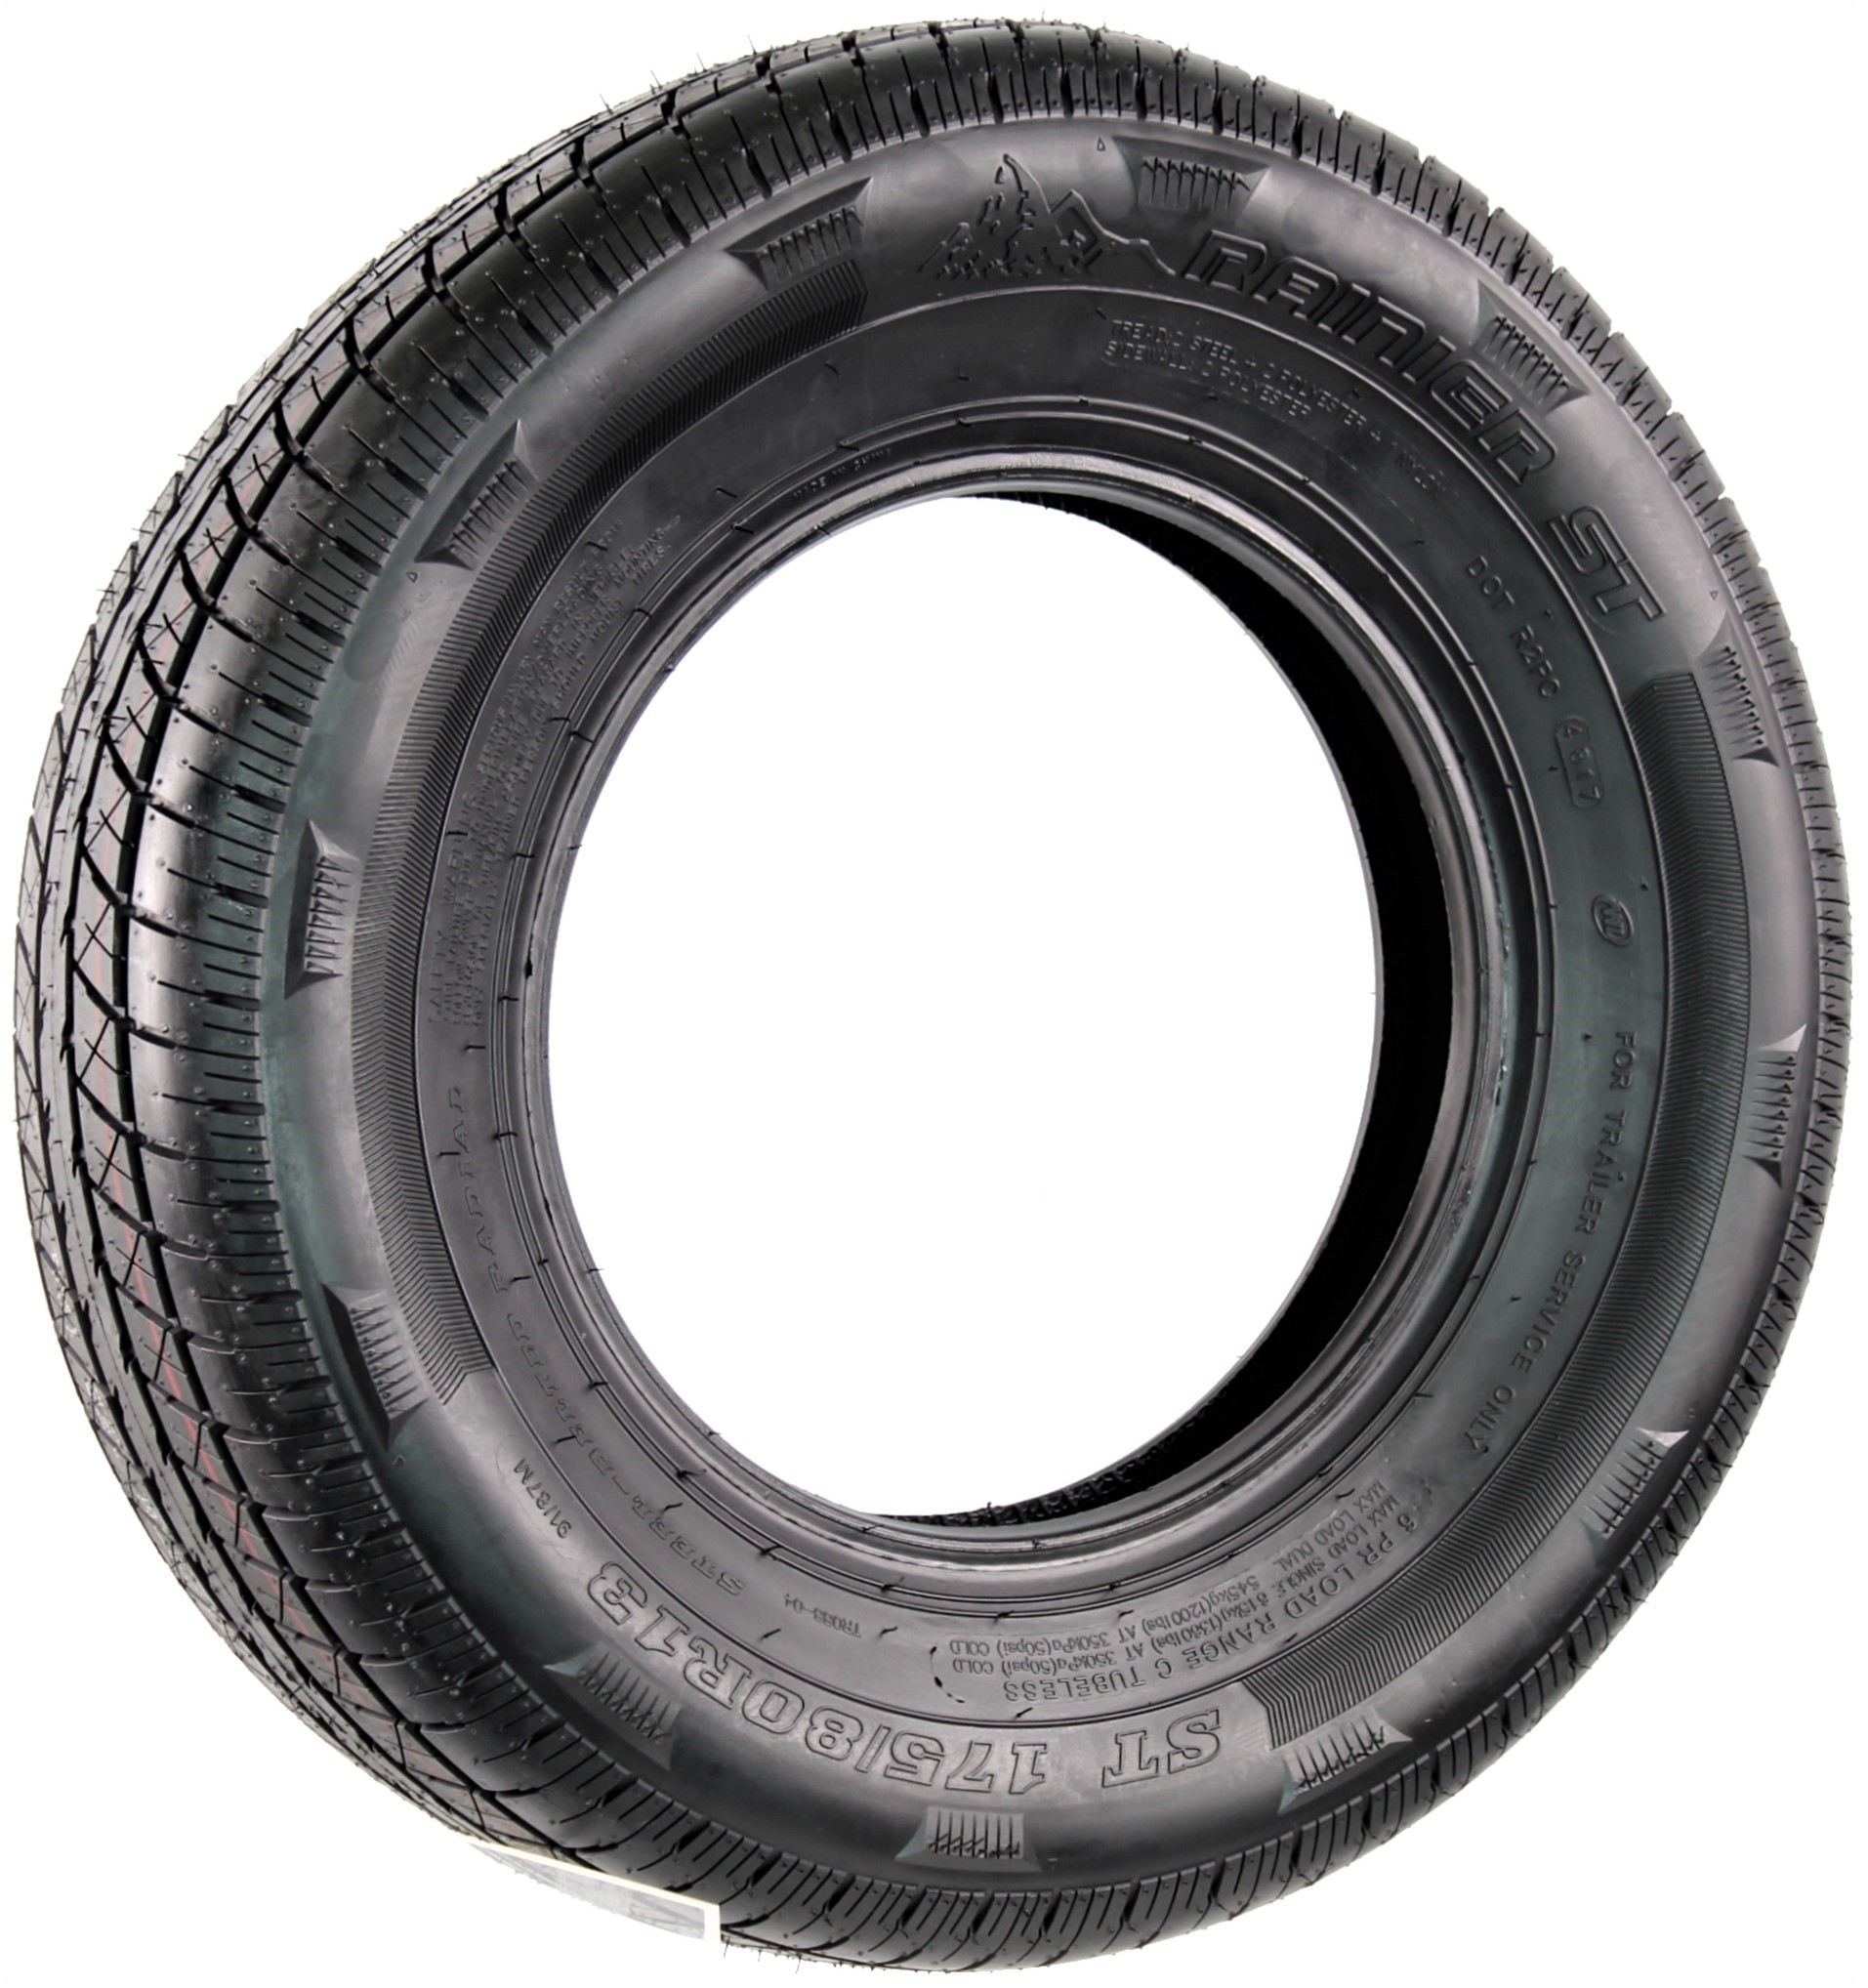 Rainier ST175/80R13 LRC 6-Ply Radial Trailer Tire Image